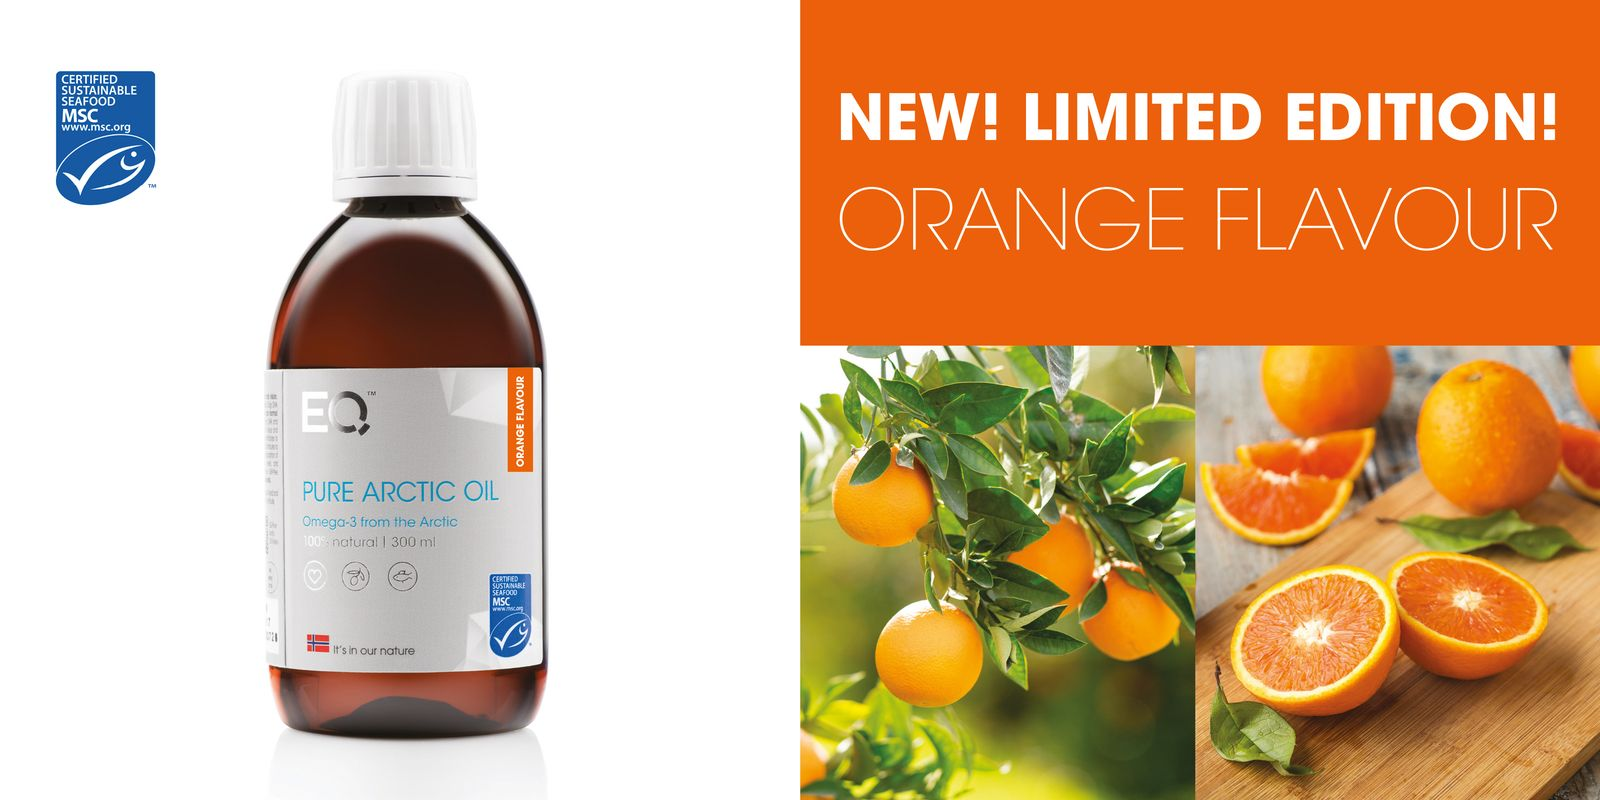 New EQ Pure Arctic Oil Orange